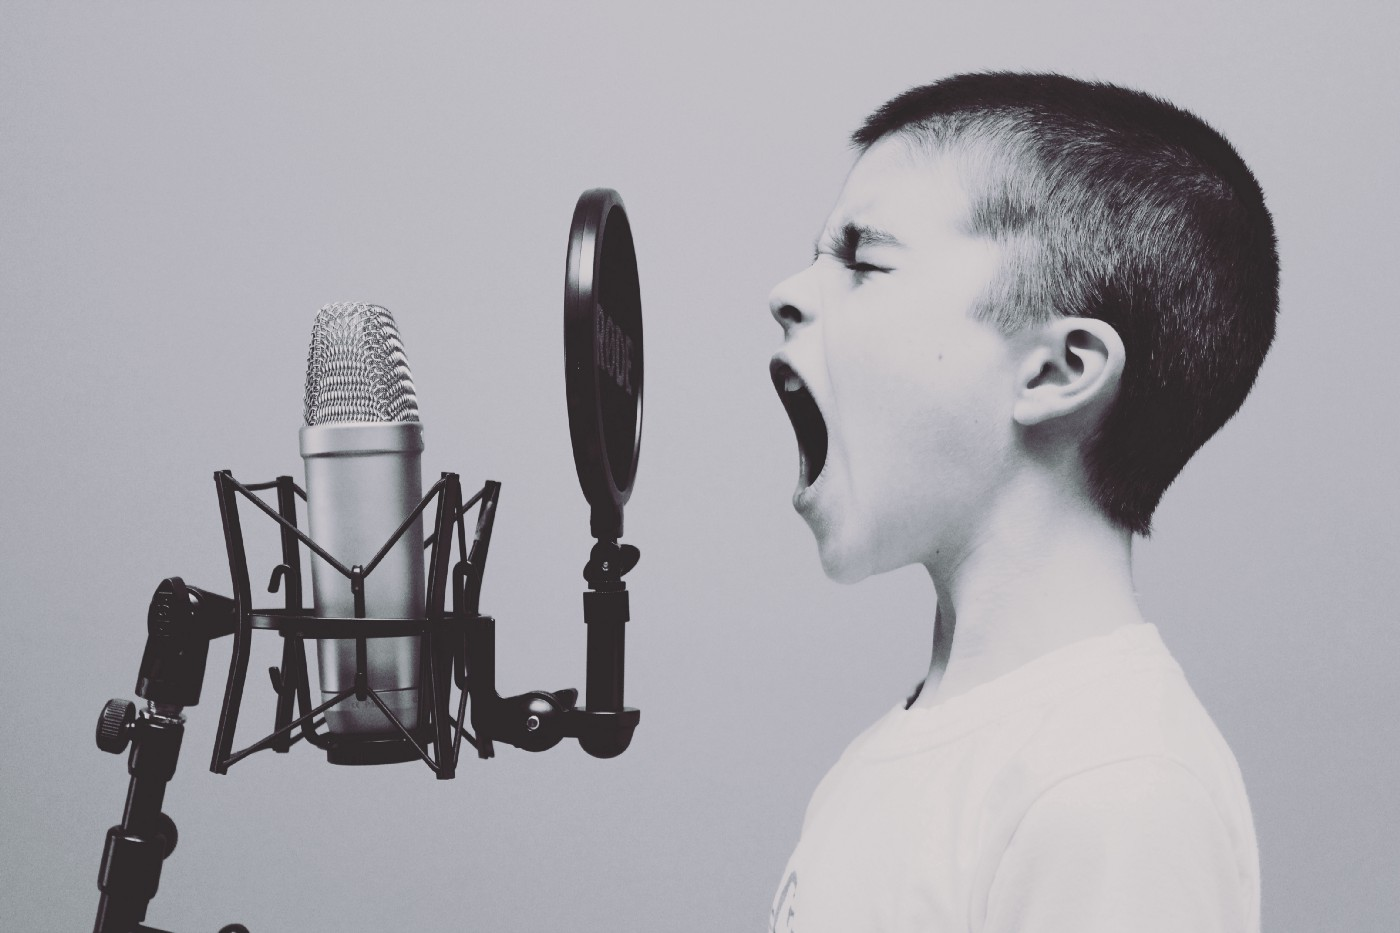 A kid yelling into a microphone. To Kill a Mockingbird by Harper Lee.